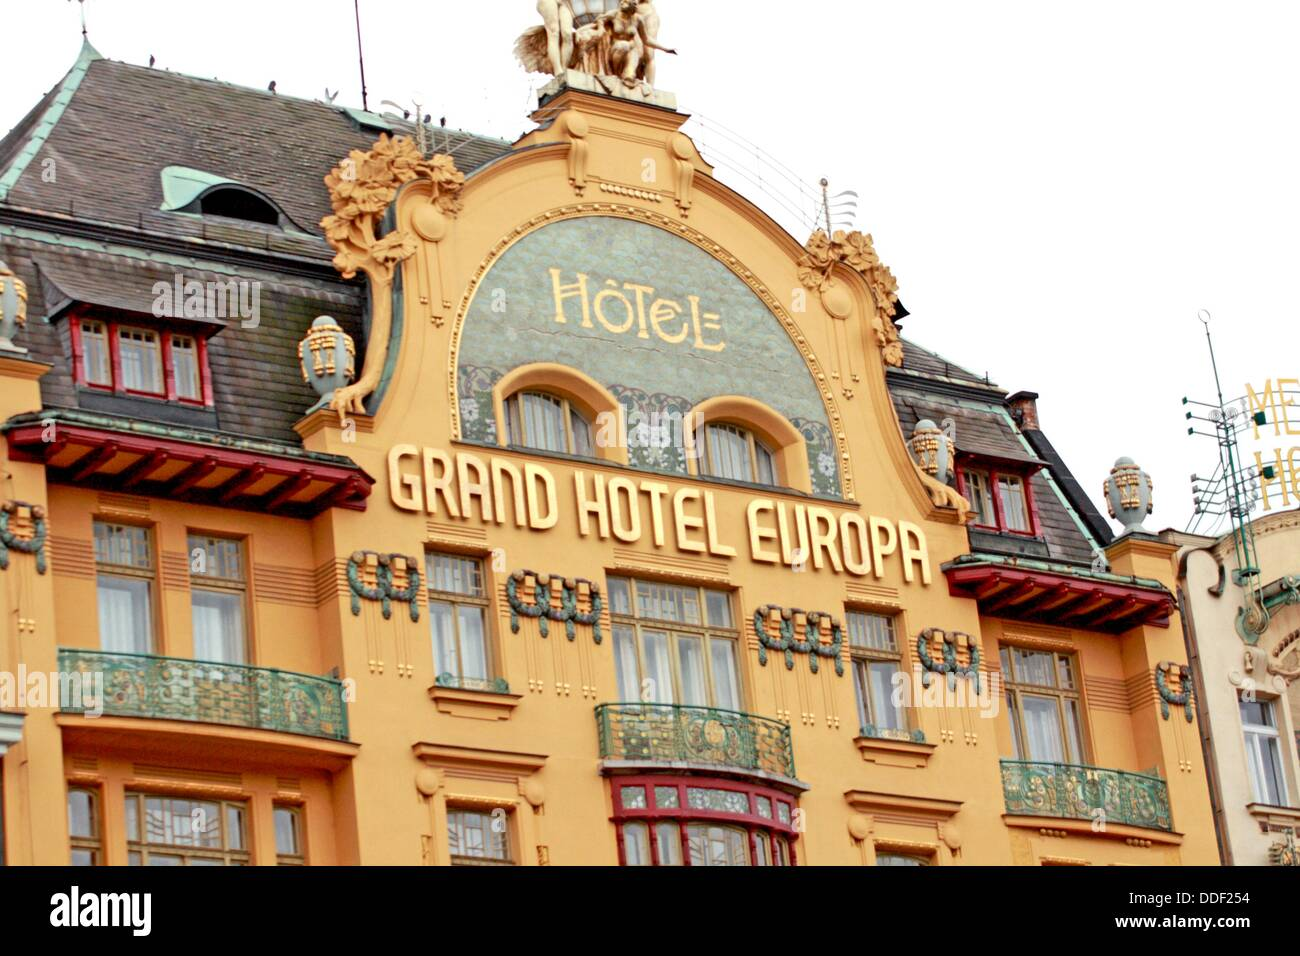 grand hotel europa prague czech republic on vaclavske namesti stock photo royalty free image. Black Bedroom Furniture Sets. Home Design Ideas